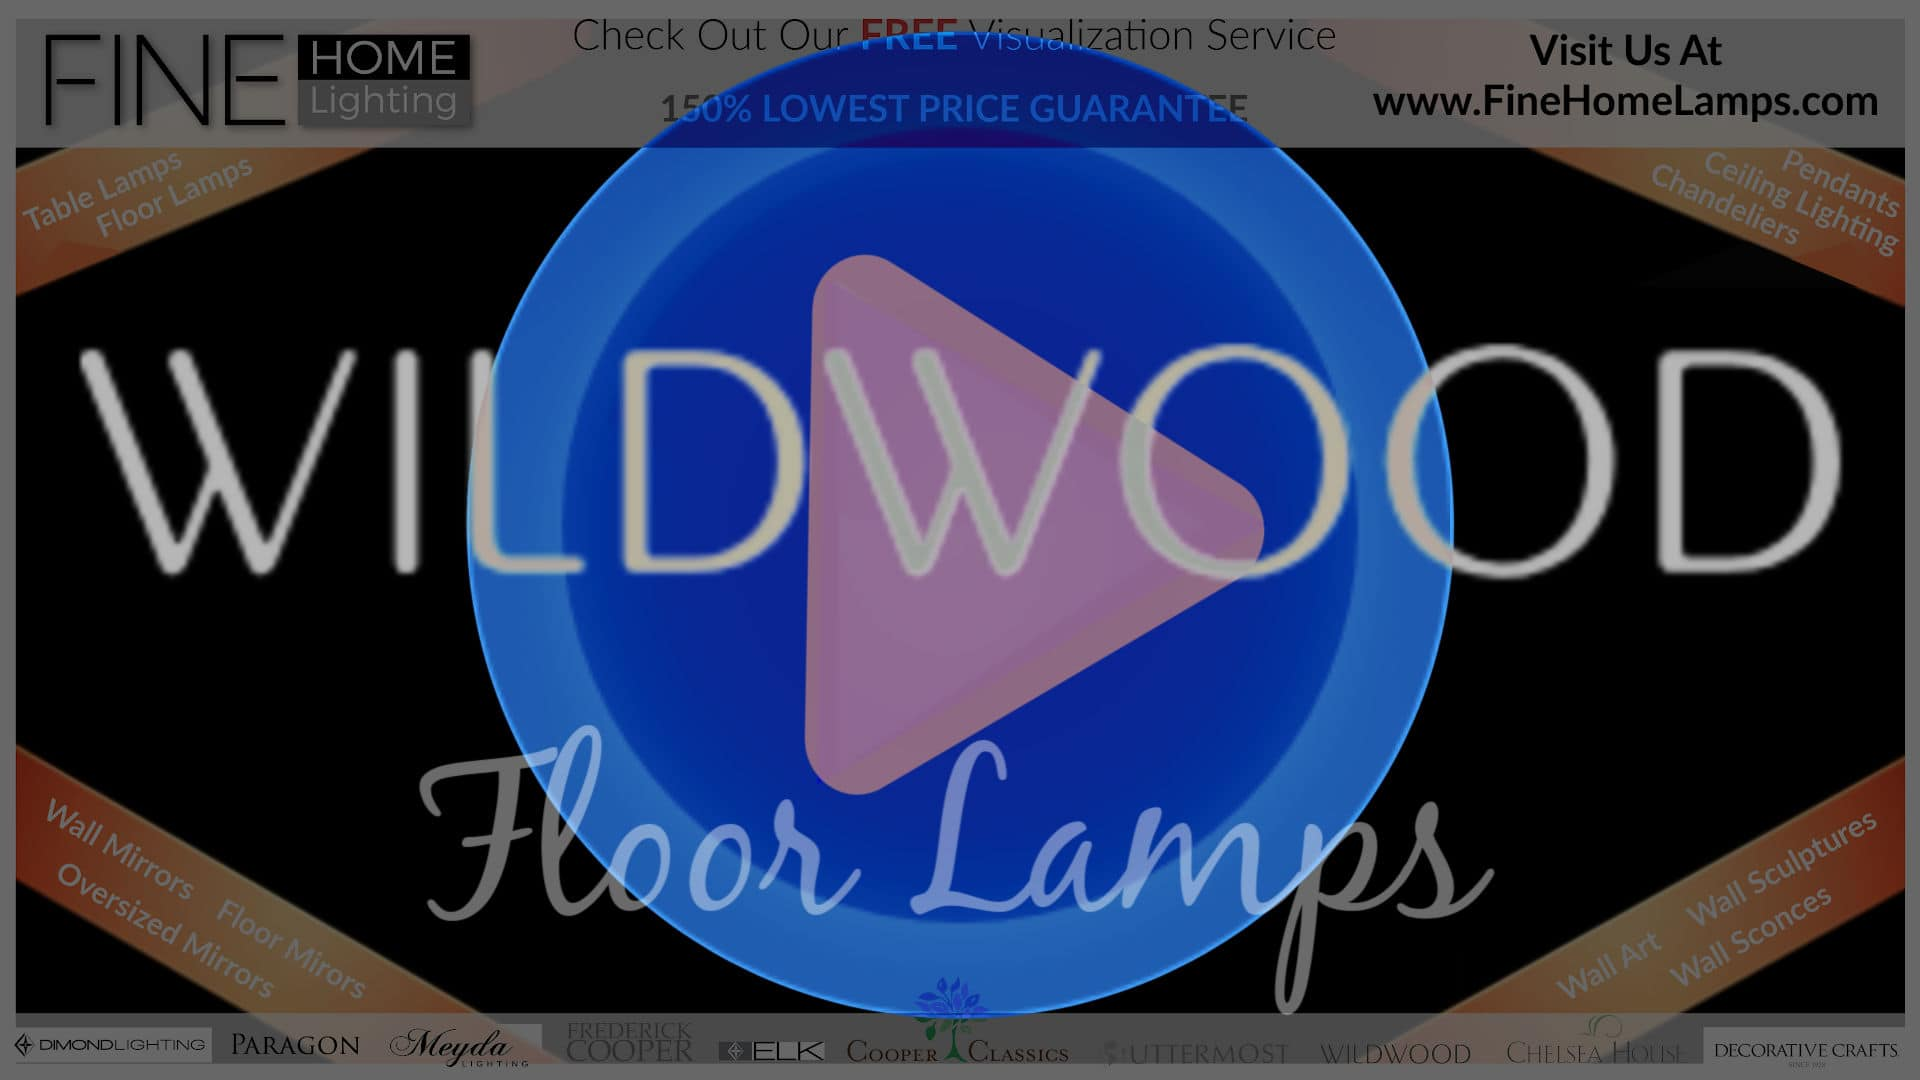 Wildwood-Floor-Lamps-Thanks-for-watching-this-video-Get-an-additional-15-percent-off-your-next-purchase-Use-Coupon-Code-VIDEO